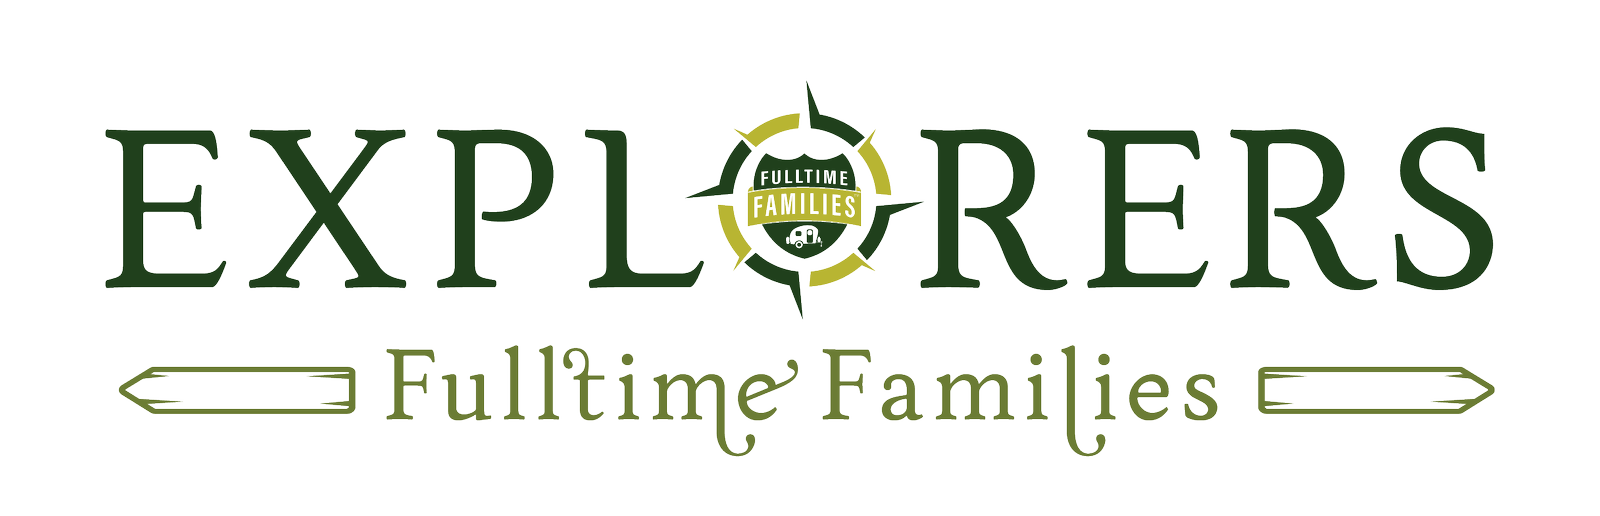 Fulltime Families Explorers Program Badge